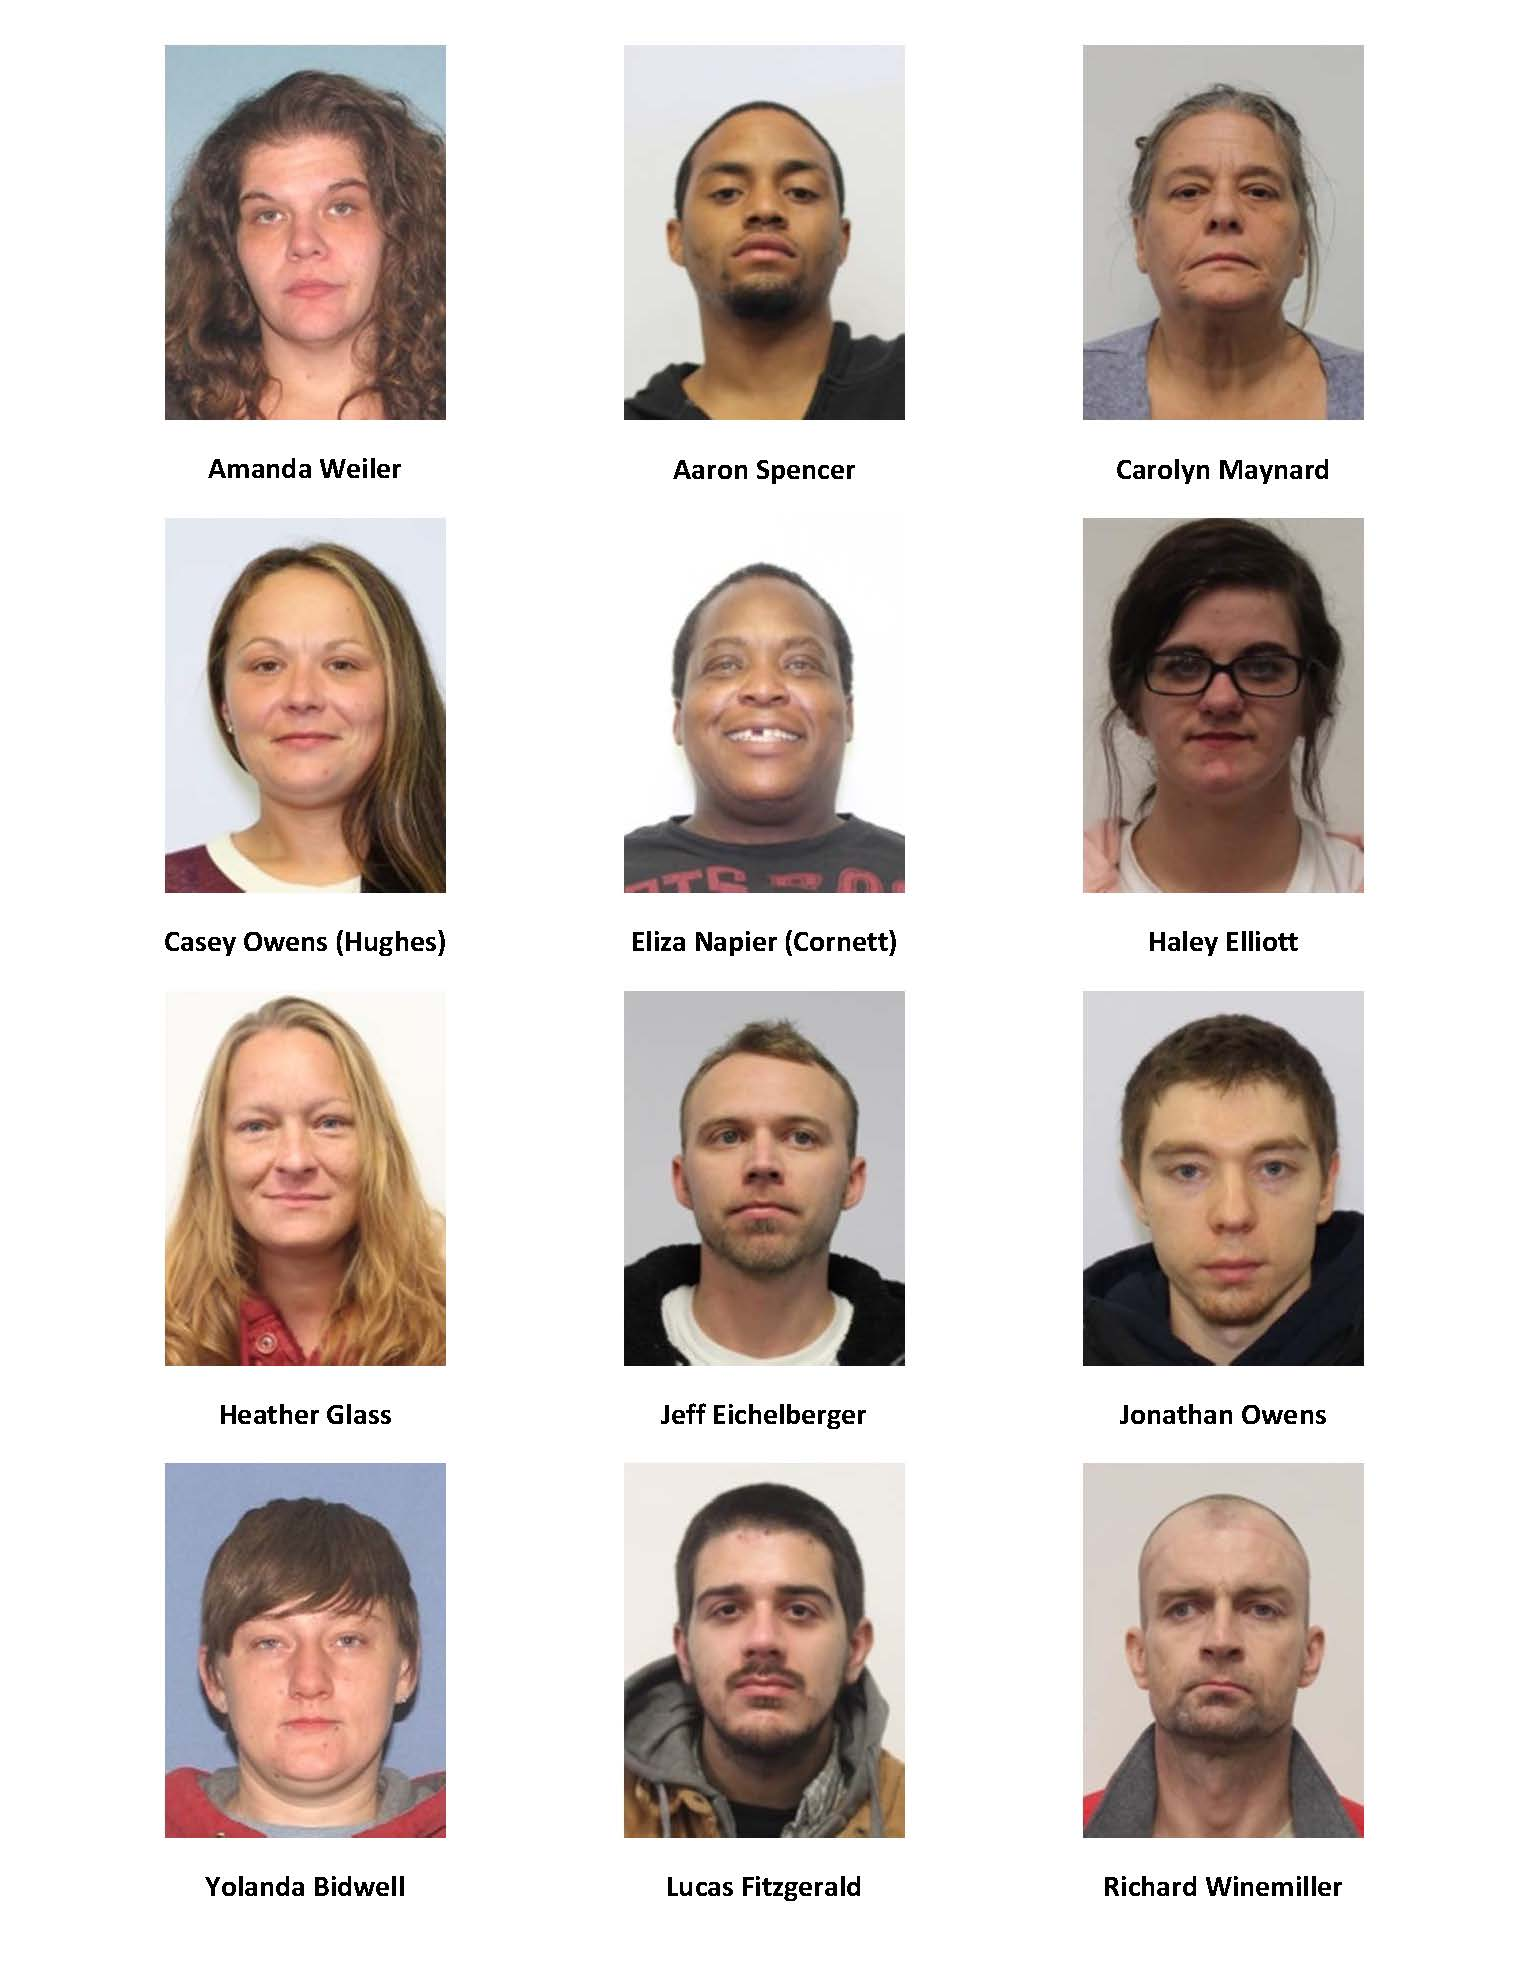 Matrix showing pictures of 12 individuals with felony warrants being sought by police